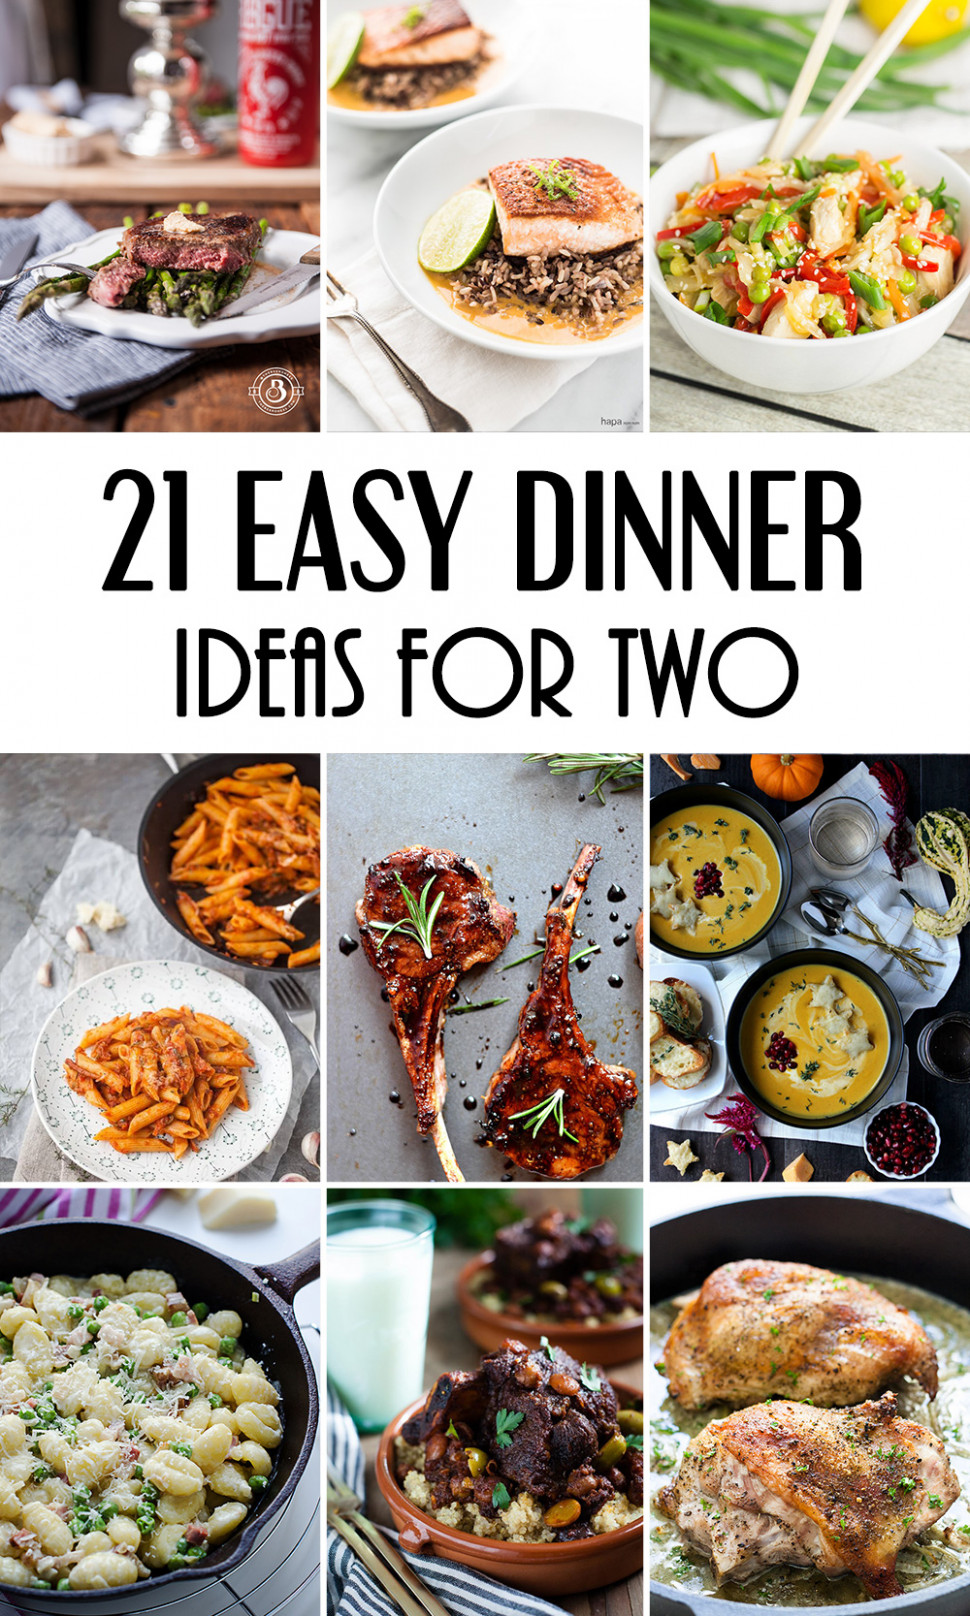 13 Easy Dinner Ideas For Two That Will Impress Your Loved One - recipes easy food